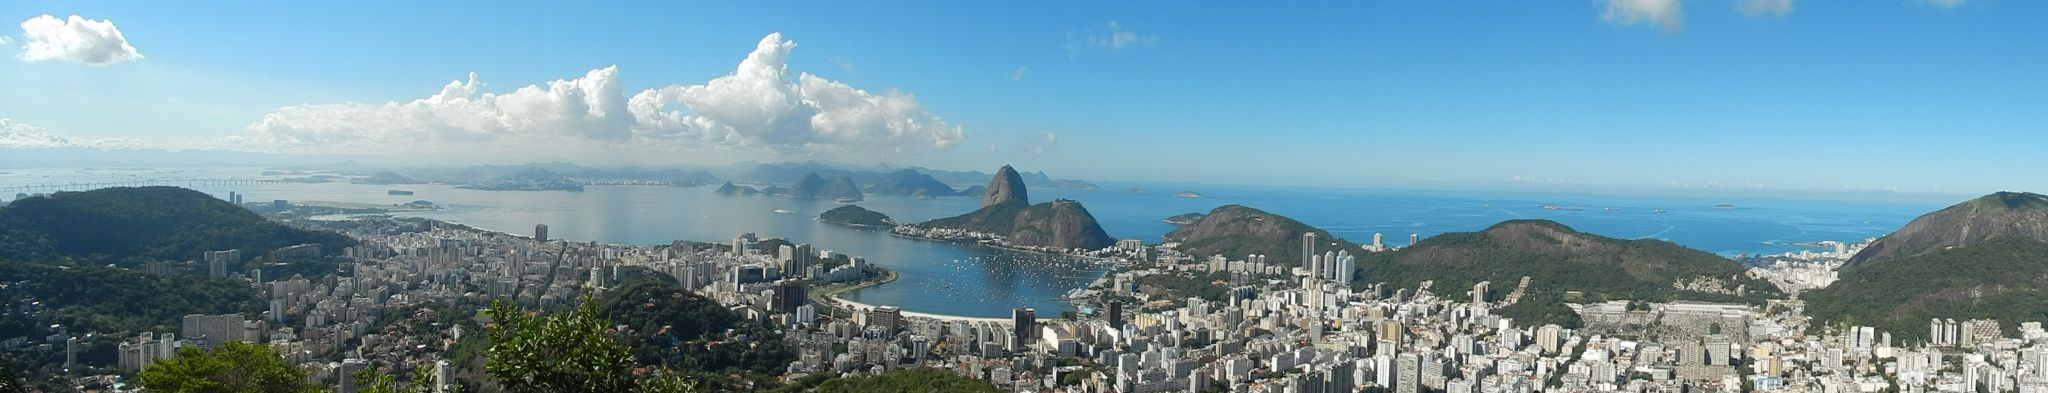 5 Restaurants in Rio de Janeiro to eat traditional Brazilian cuisine- Footloose Lemon Juice